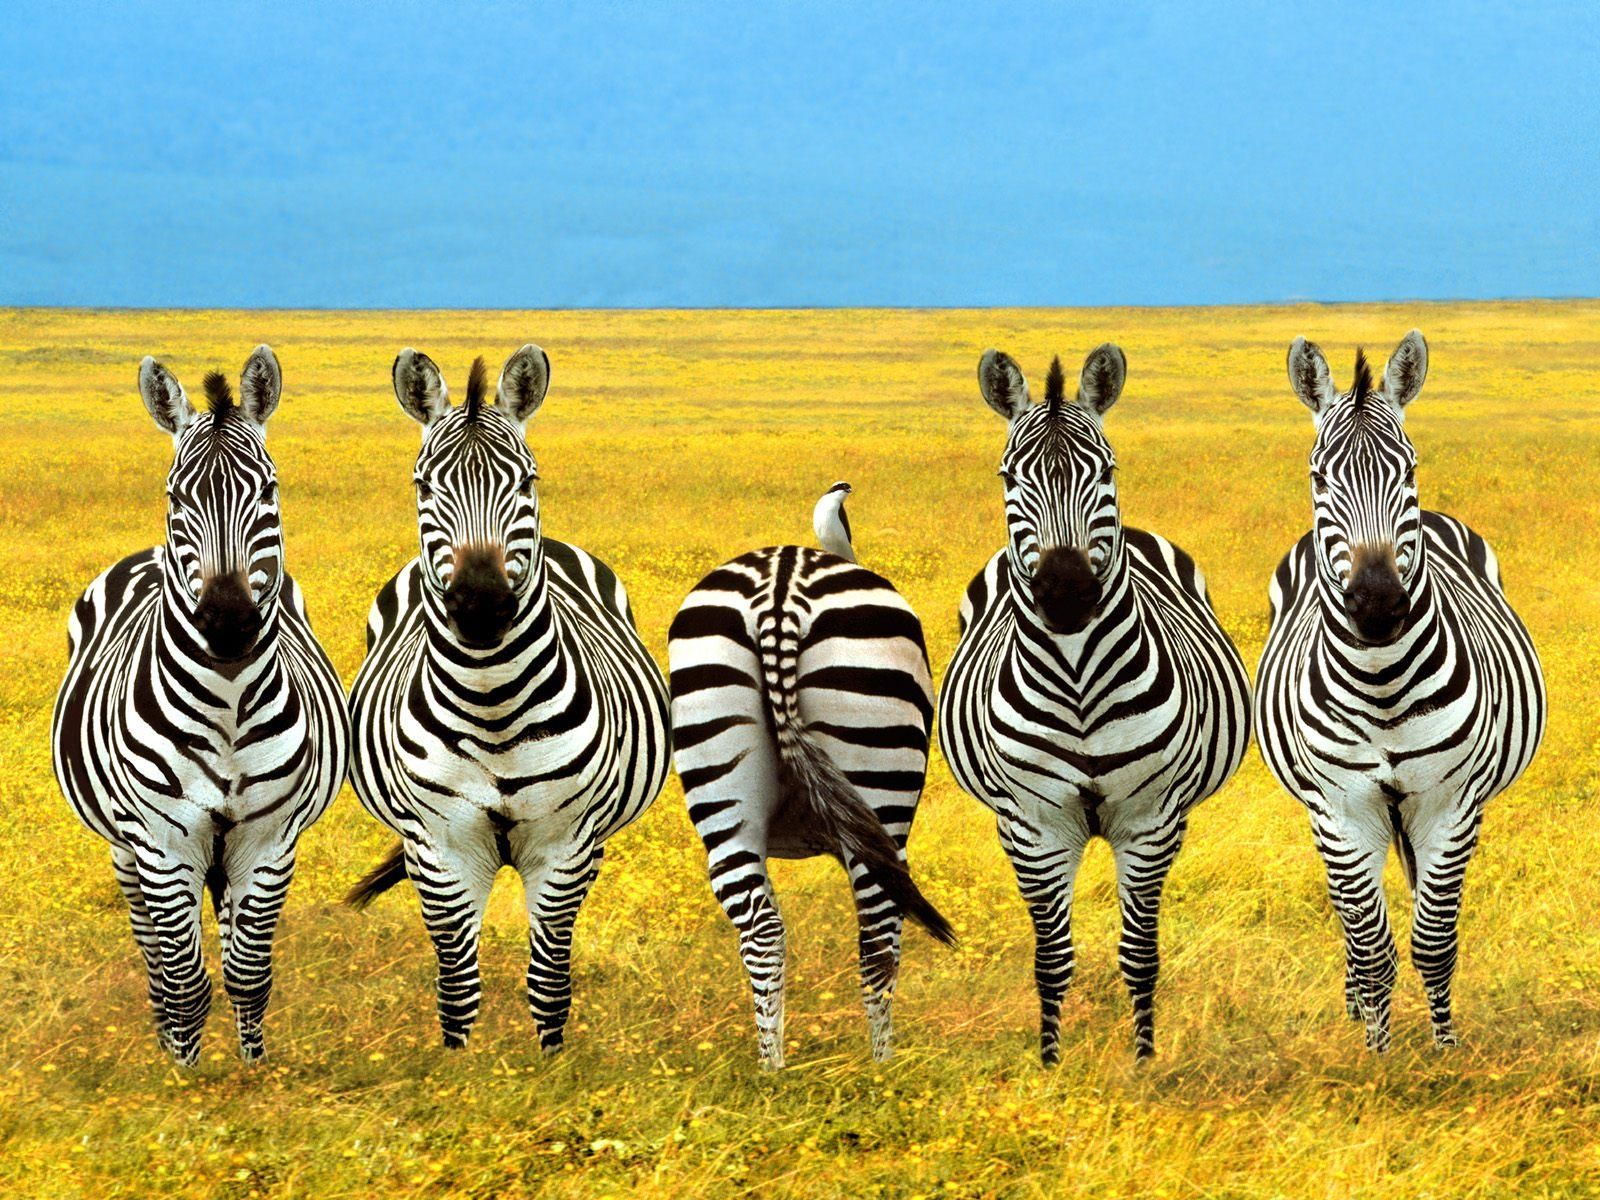 download animals zebra wallpapers images photos and pictures 1920a—1200 zebra desktop wallpapers 41